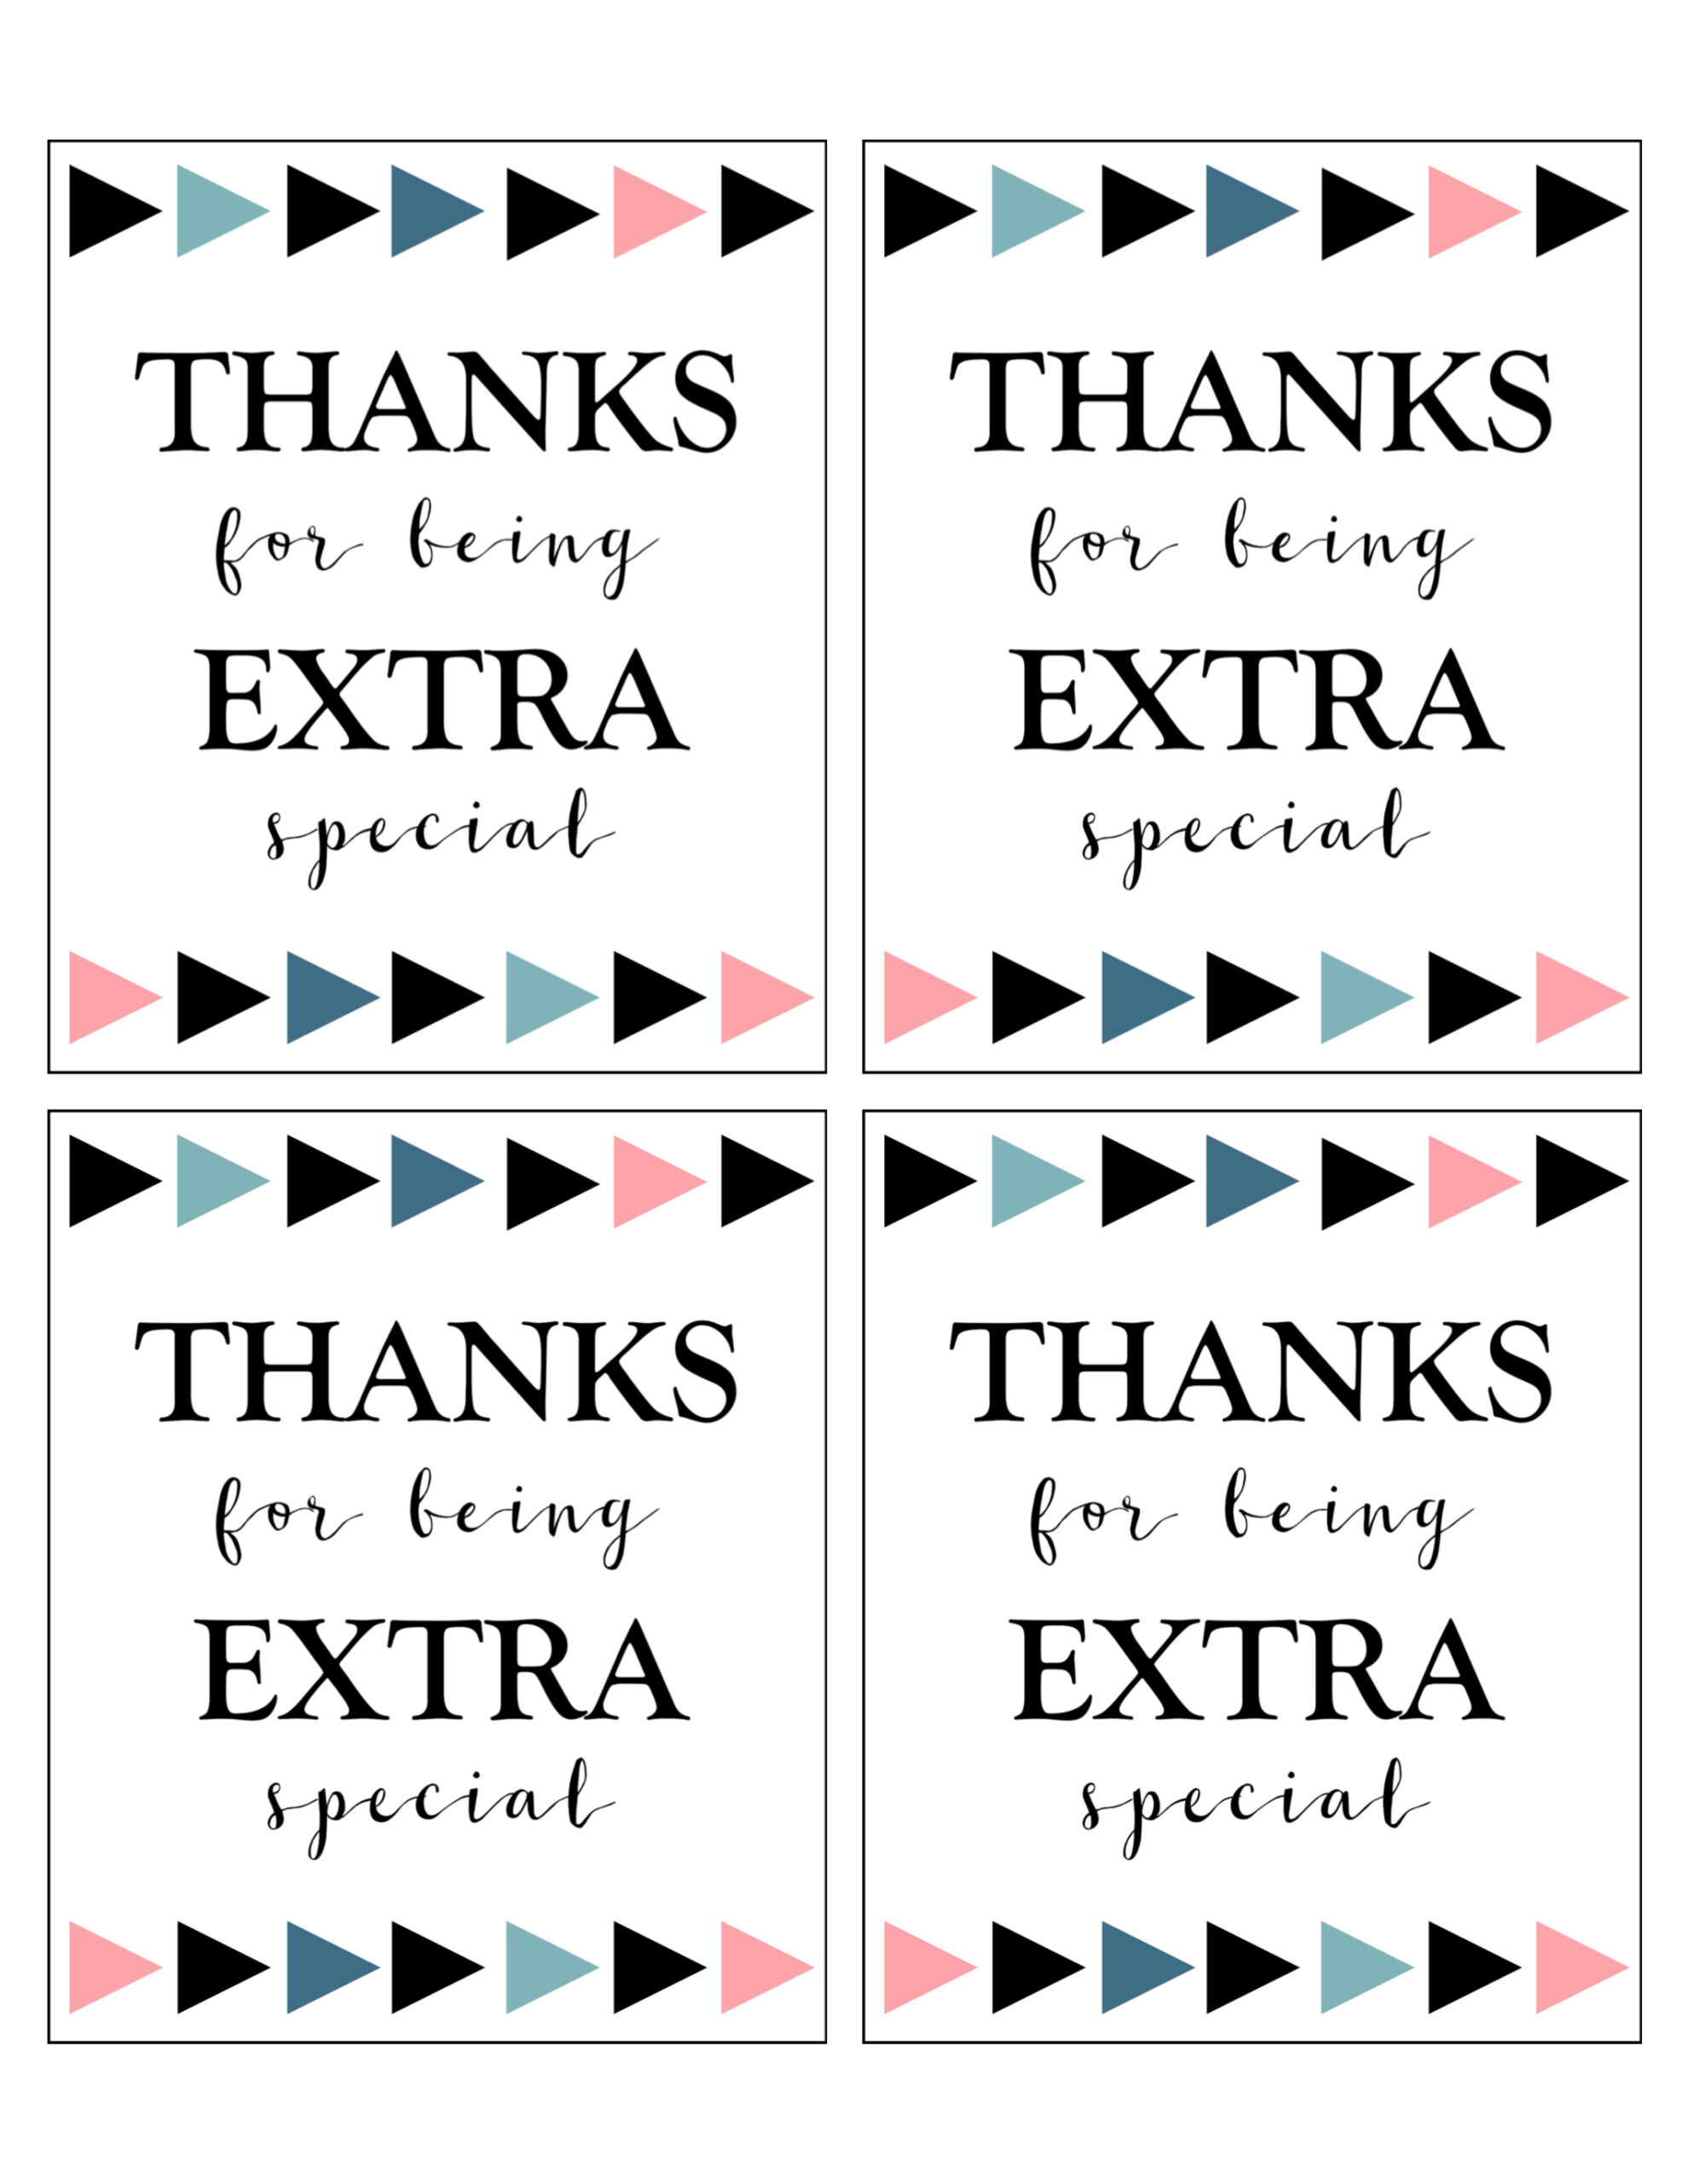 Extra Gum Thank You Printable Paper Trail Design